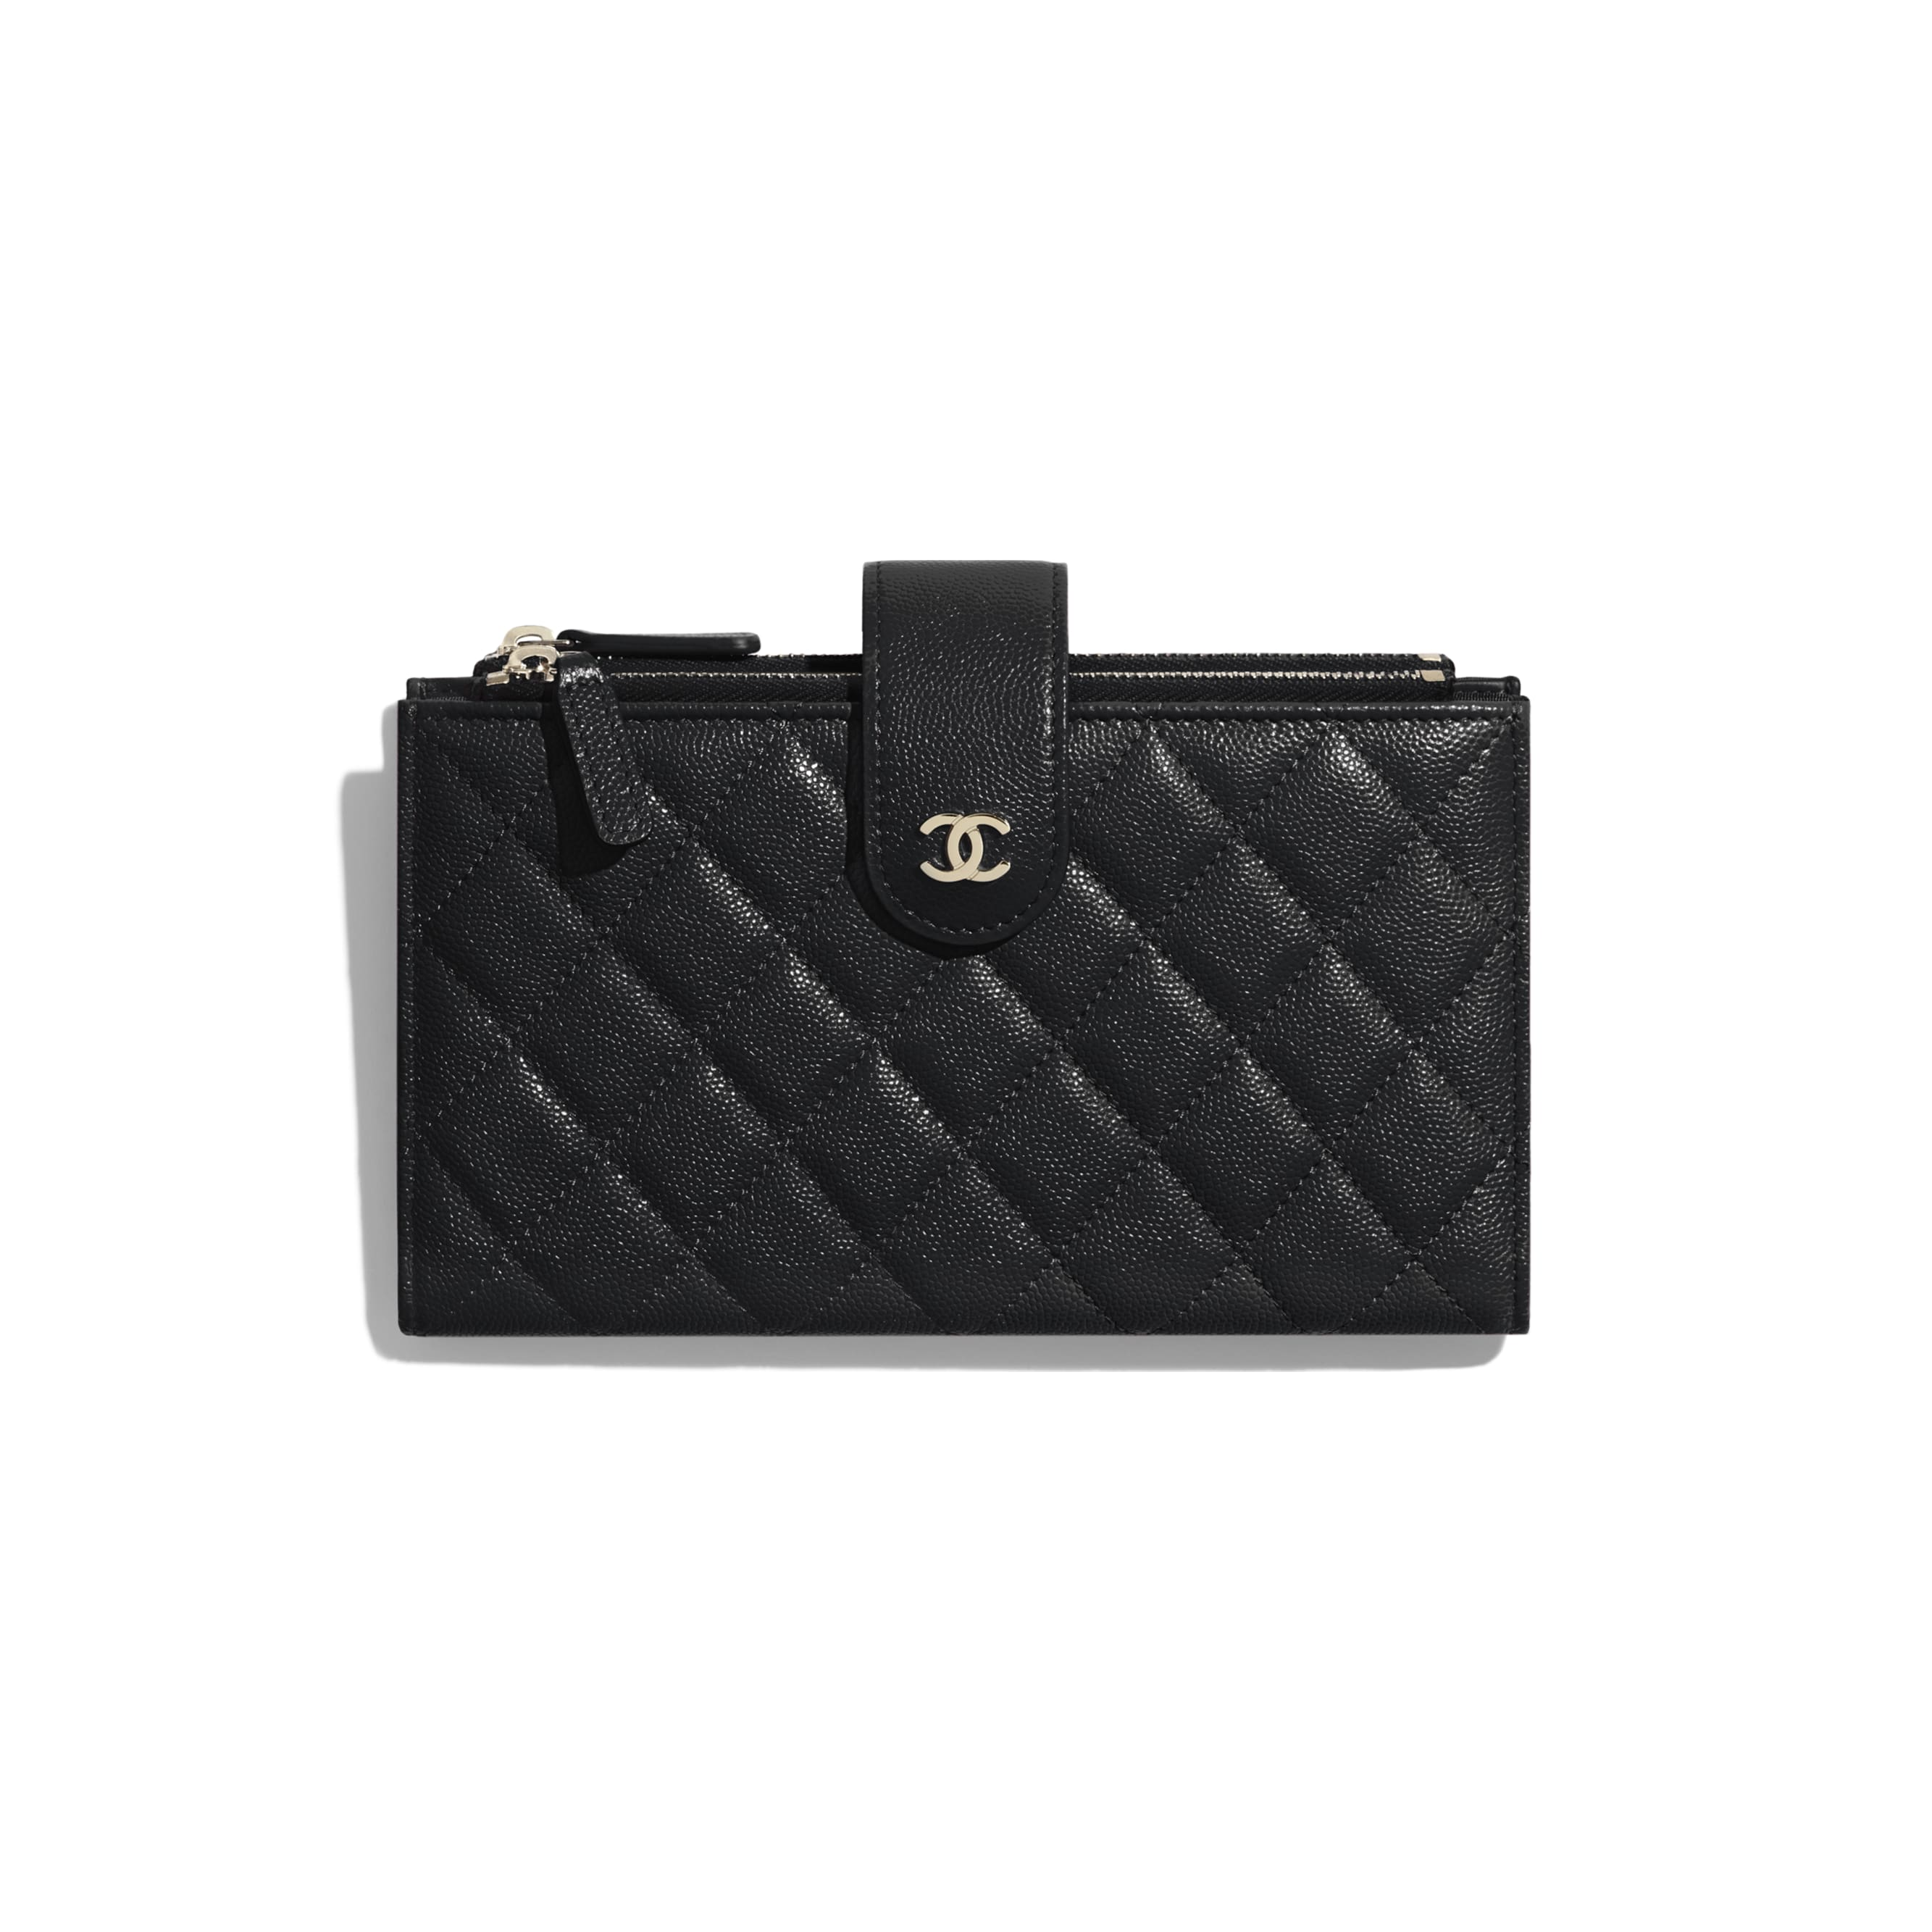 Classic Long Zipped Wallet - Black - Grained Shiny Calfskin & Gold-Tone Metal - CHANEL - Default view - see standard sized version